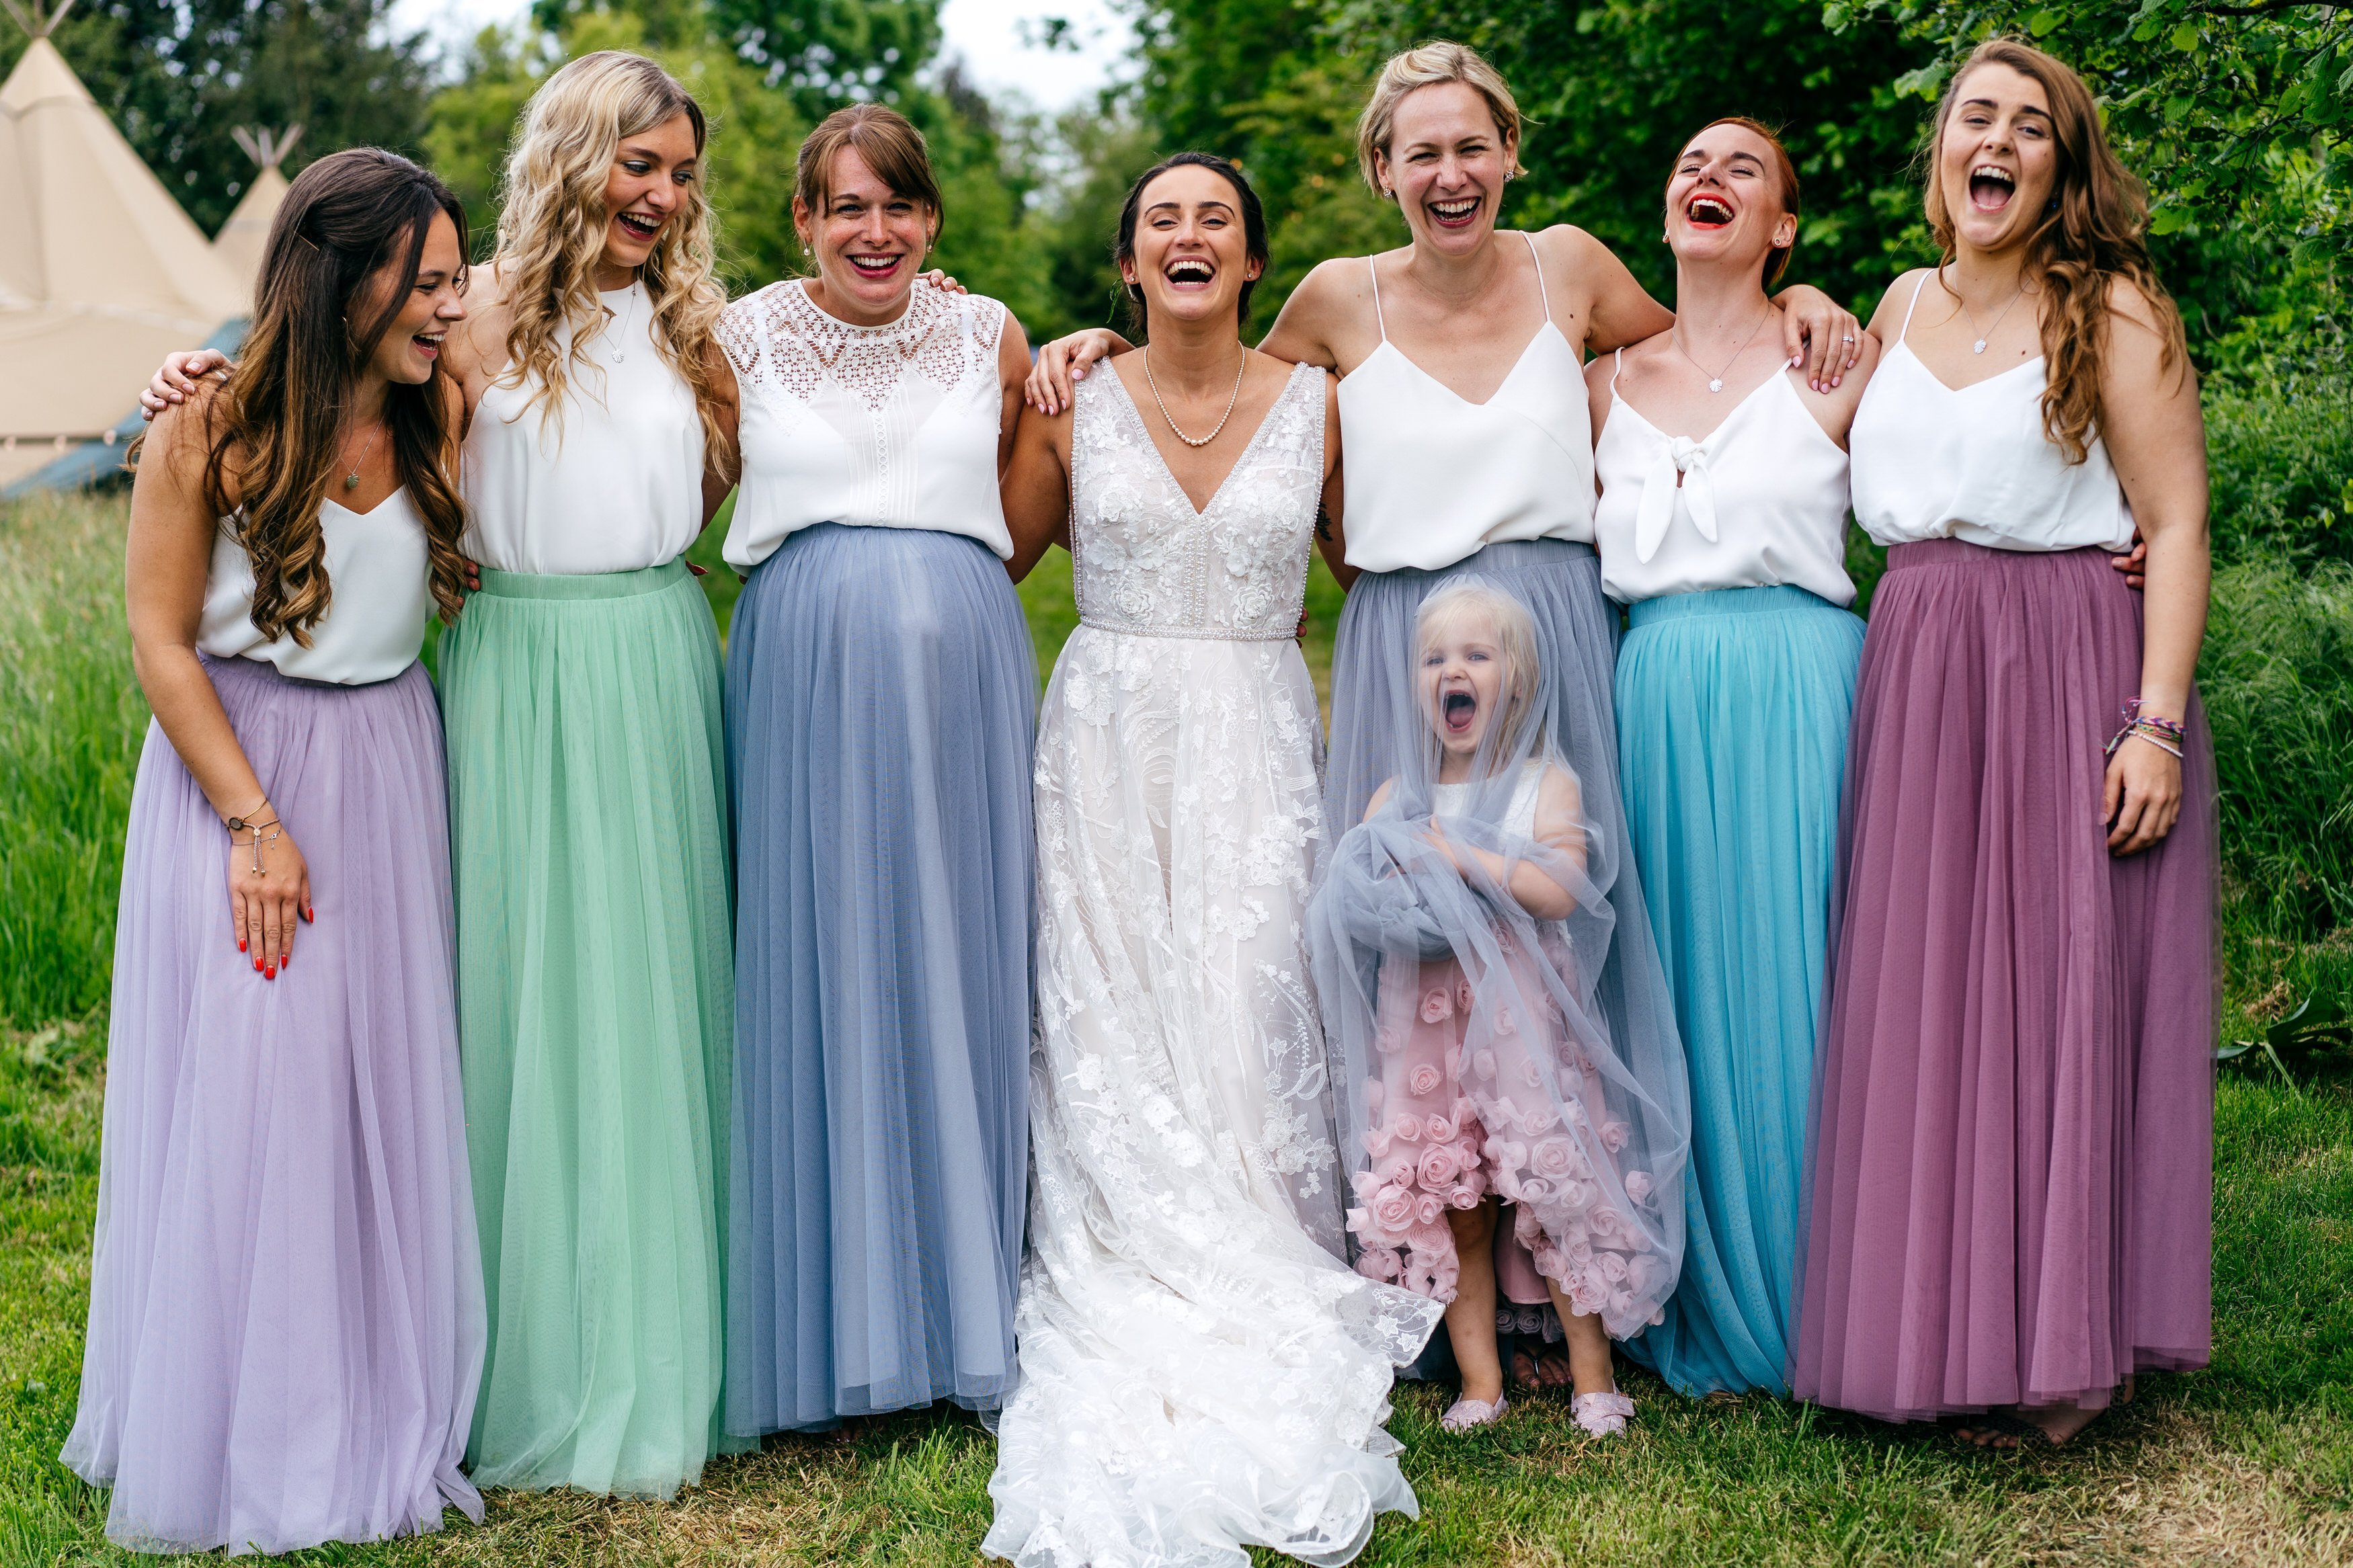 Colourful bridesmaid dresses at wedding at Escheat Farm in Bedfordshire